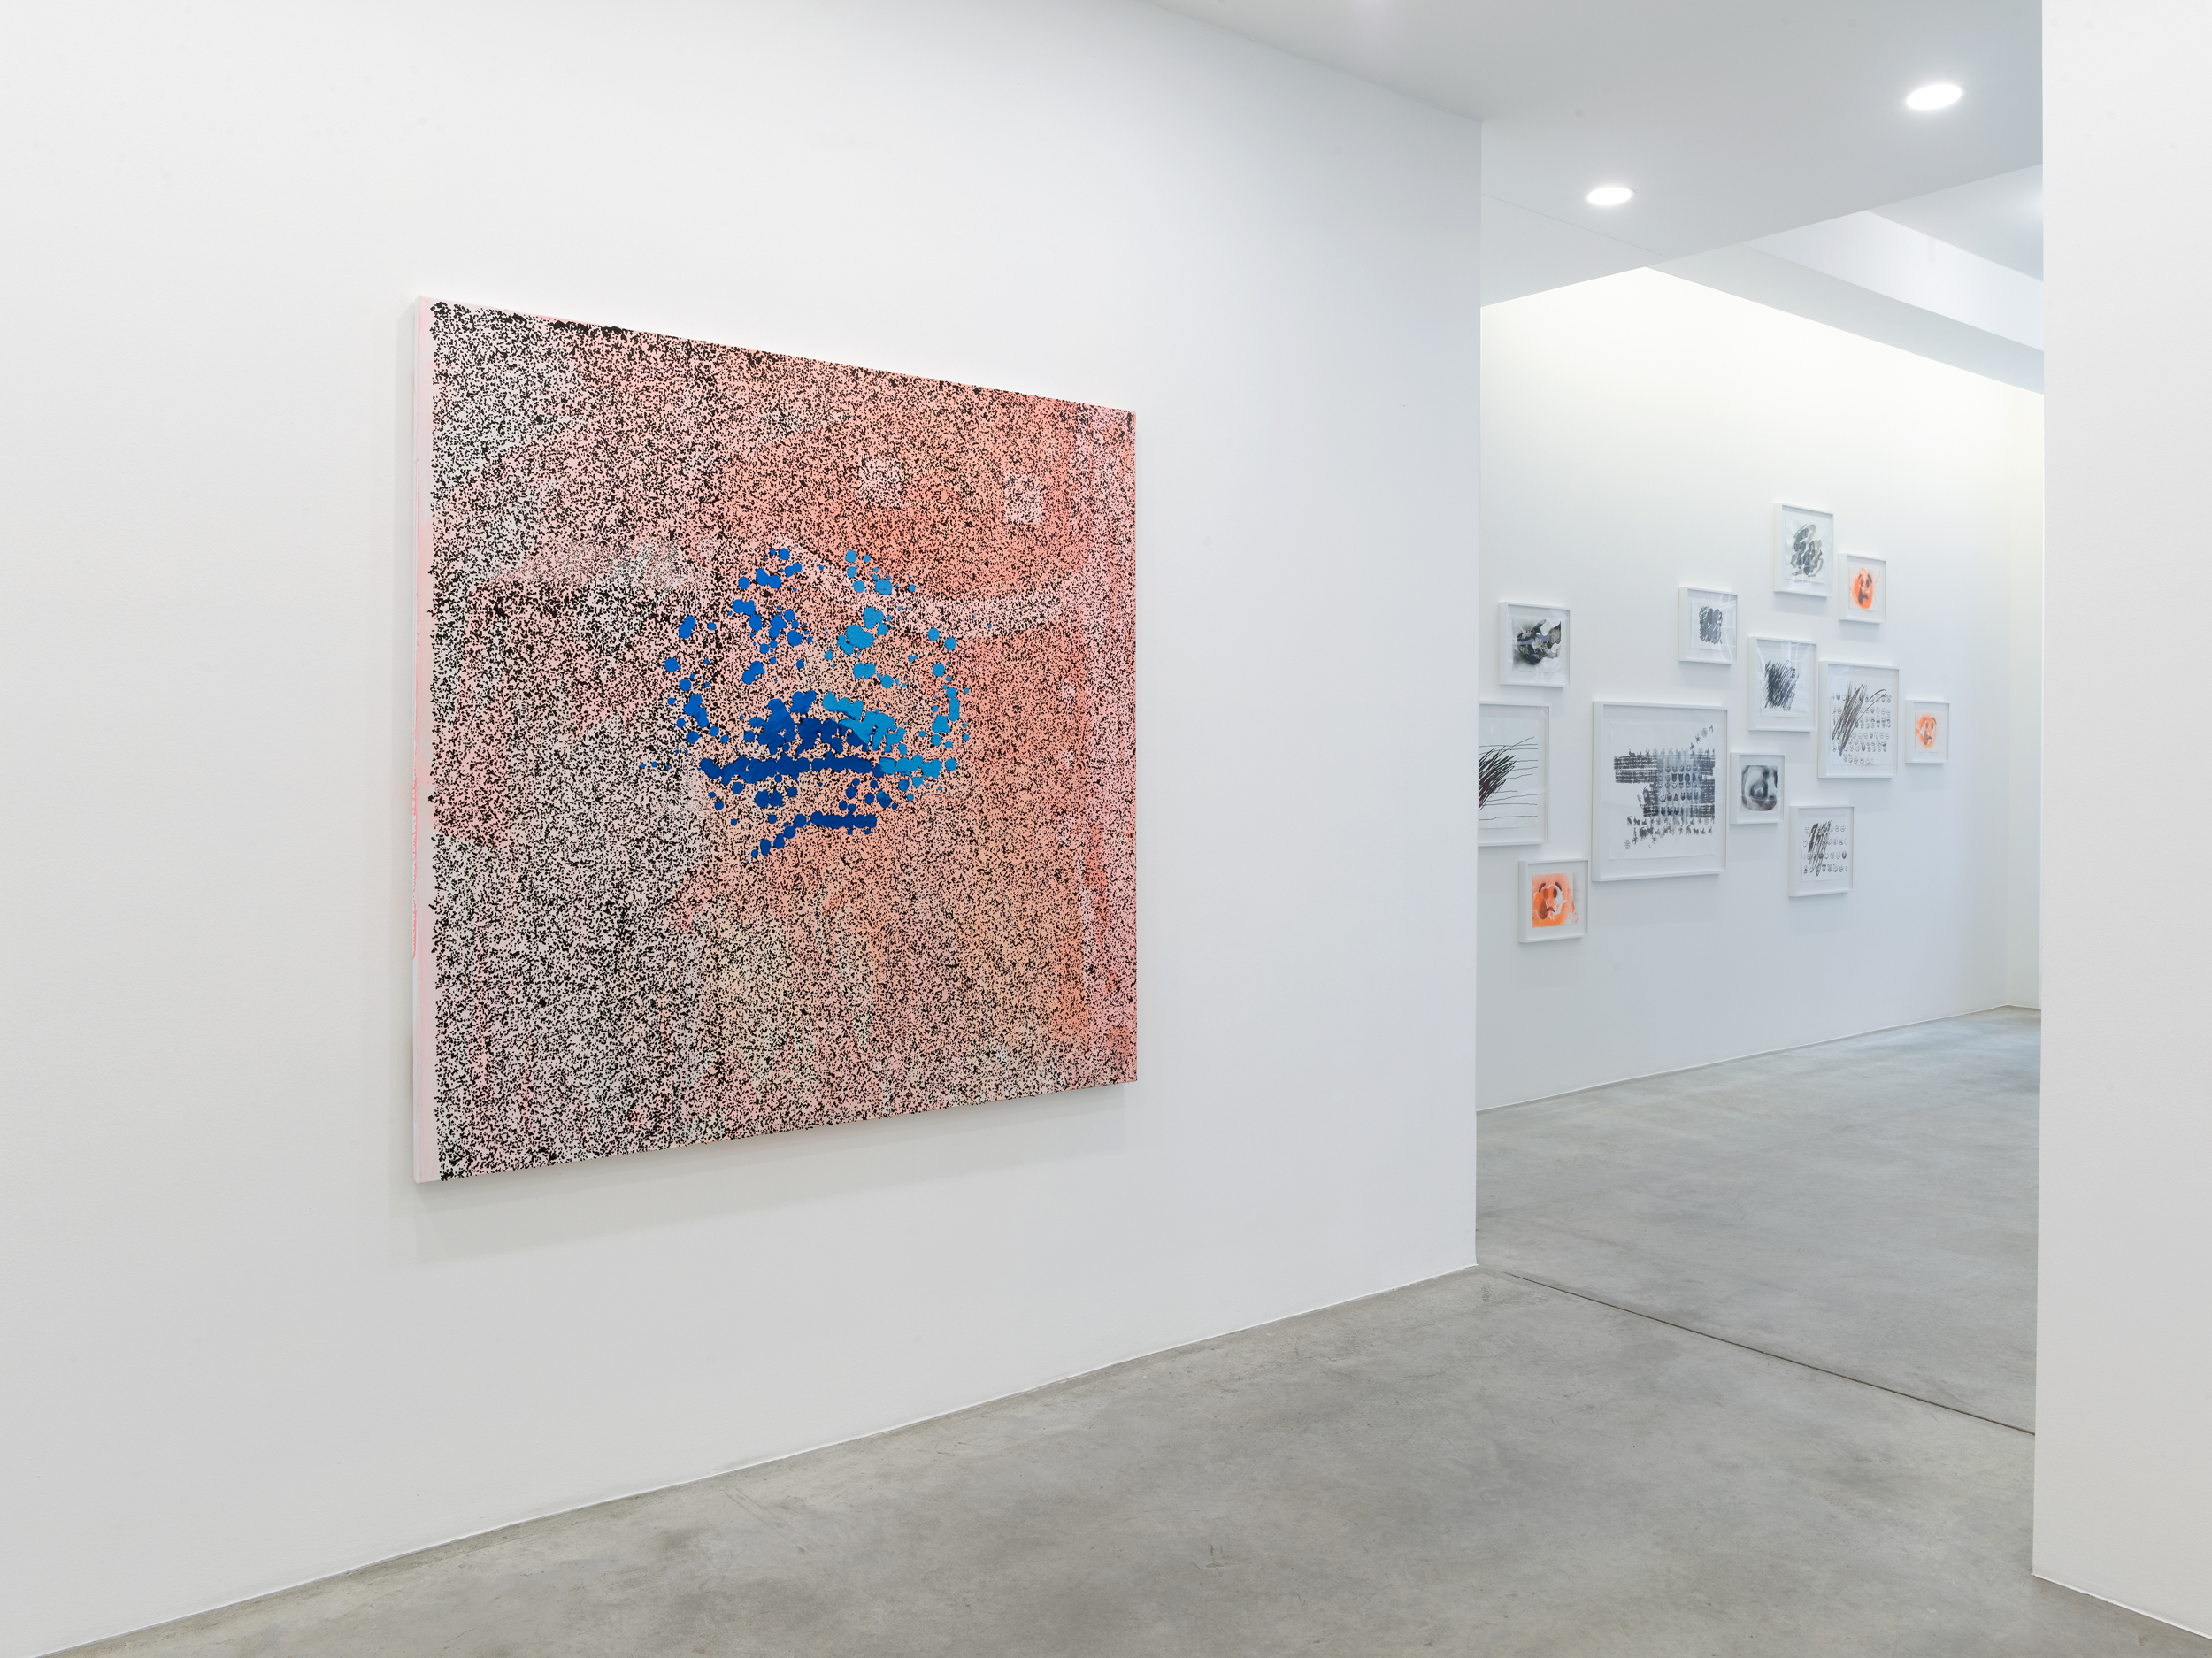 Installation view, © Jacqueline Humphries, courtesy Galerie Gisela Capitain, Cologne Photo: Simon Vogel